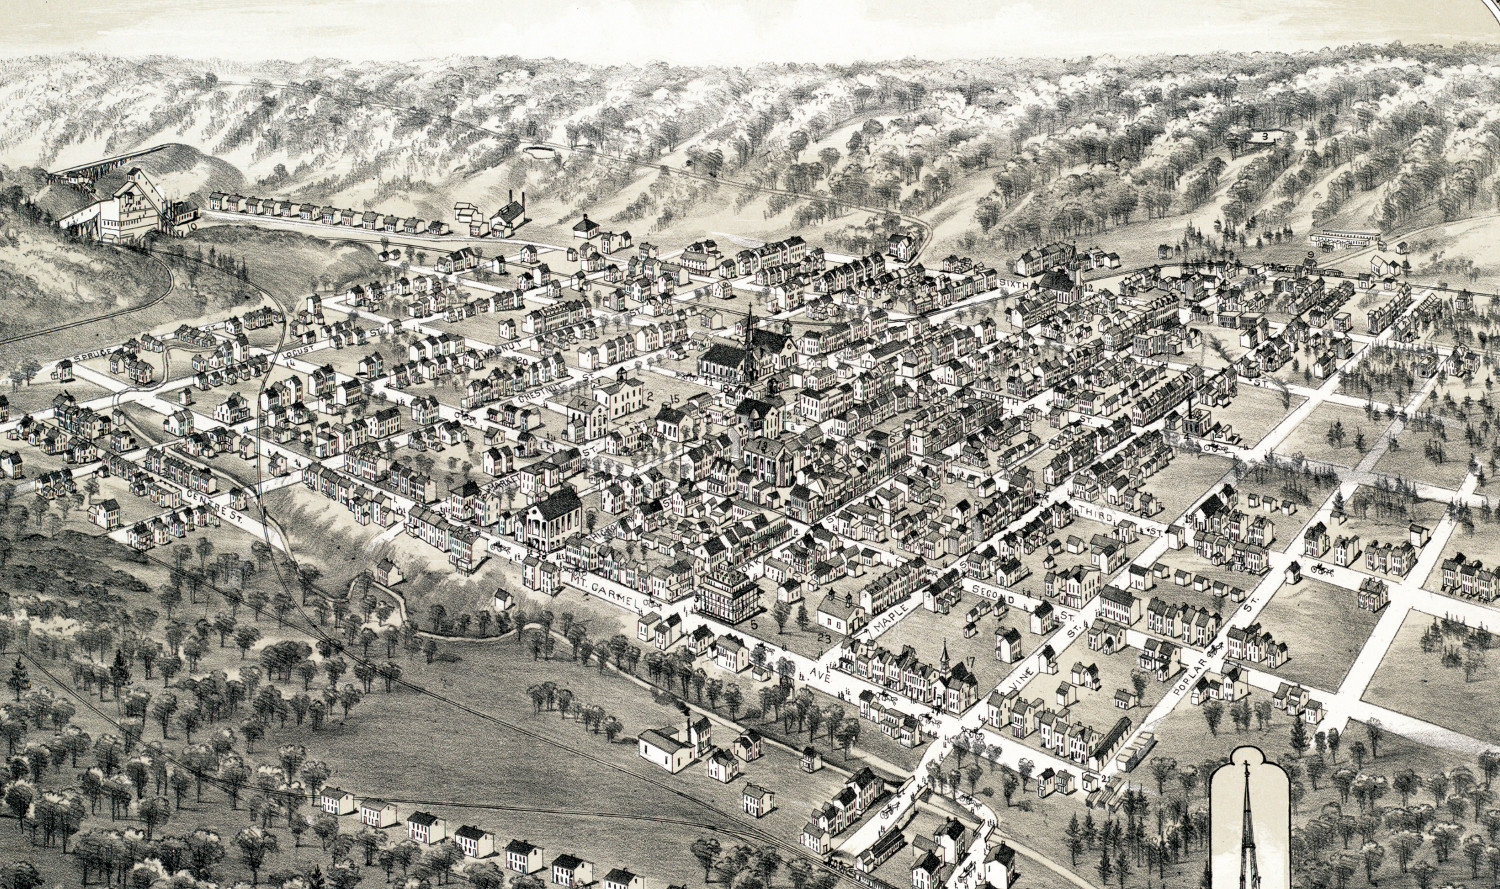 historic old map of mount carmel  pennsylvania from 1884